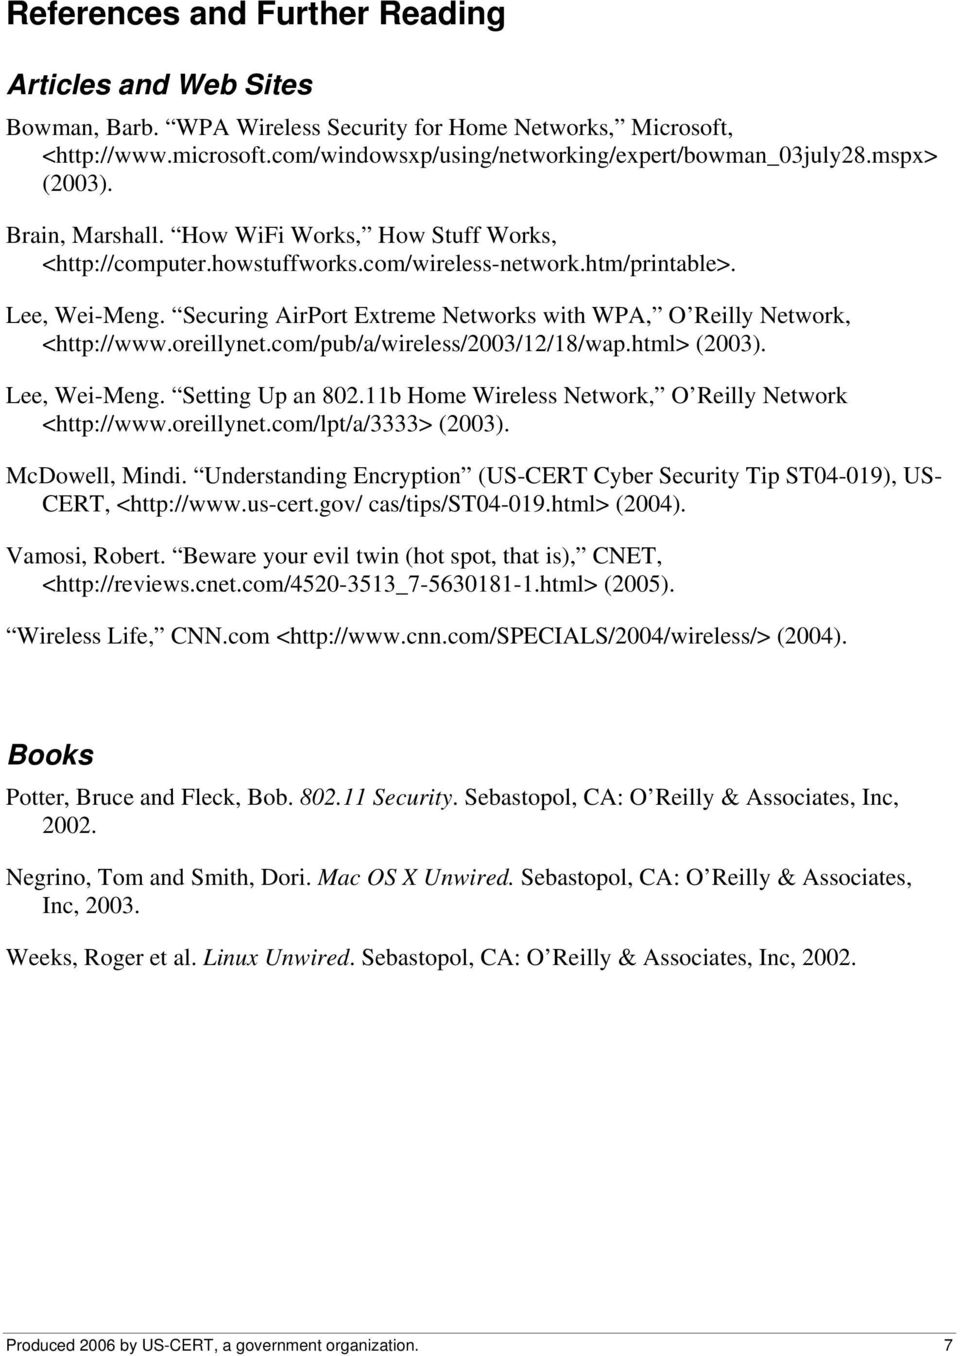 Securing AirPort Extreme Networks with WPA, O Reilly Network, <http://www.oreillynet.com/pub/a/wireless/2003/12/18/wap.html> (2003). Lee, Wei-Meng. Setting Up an 802.